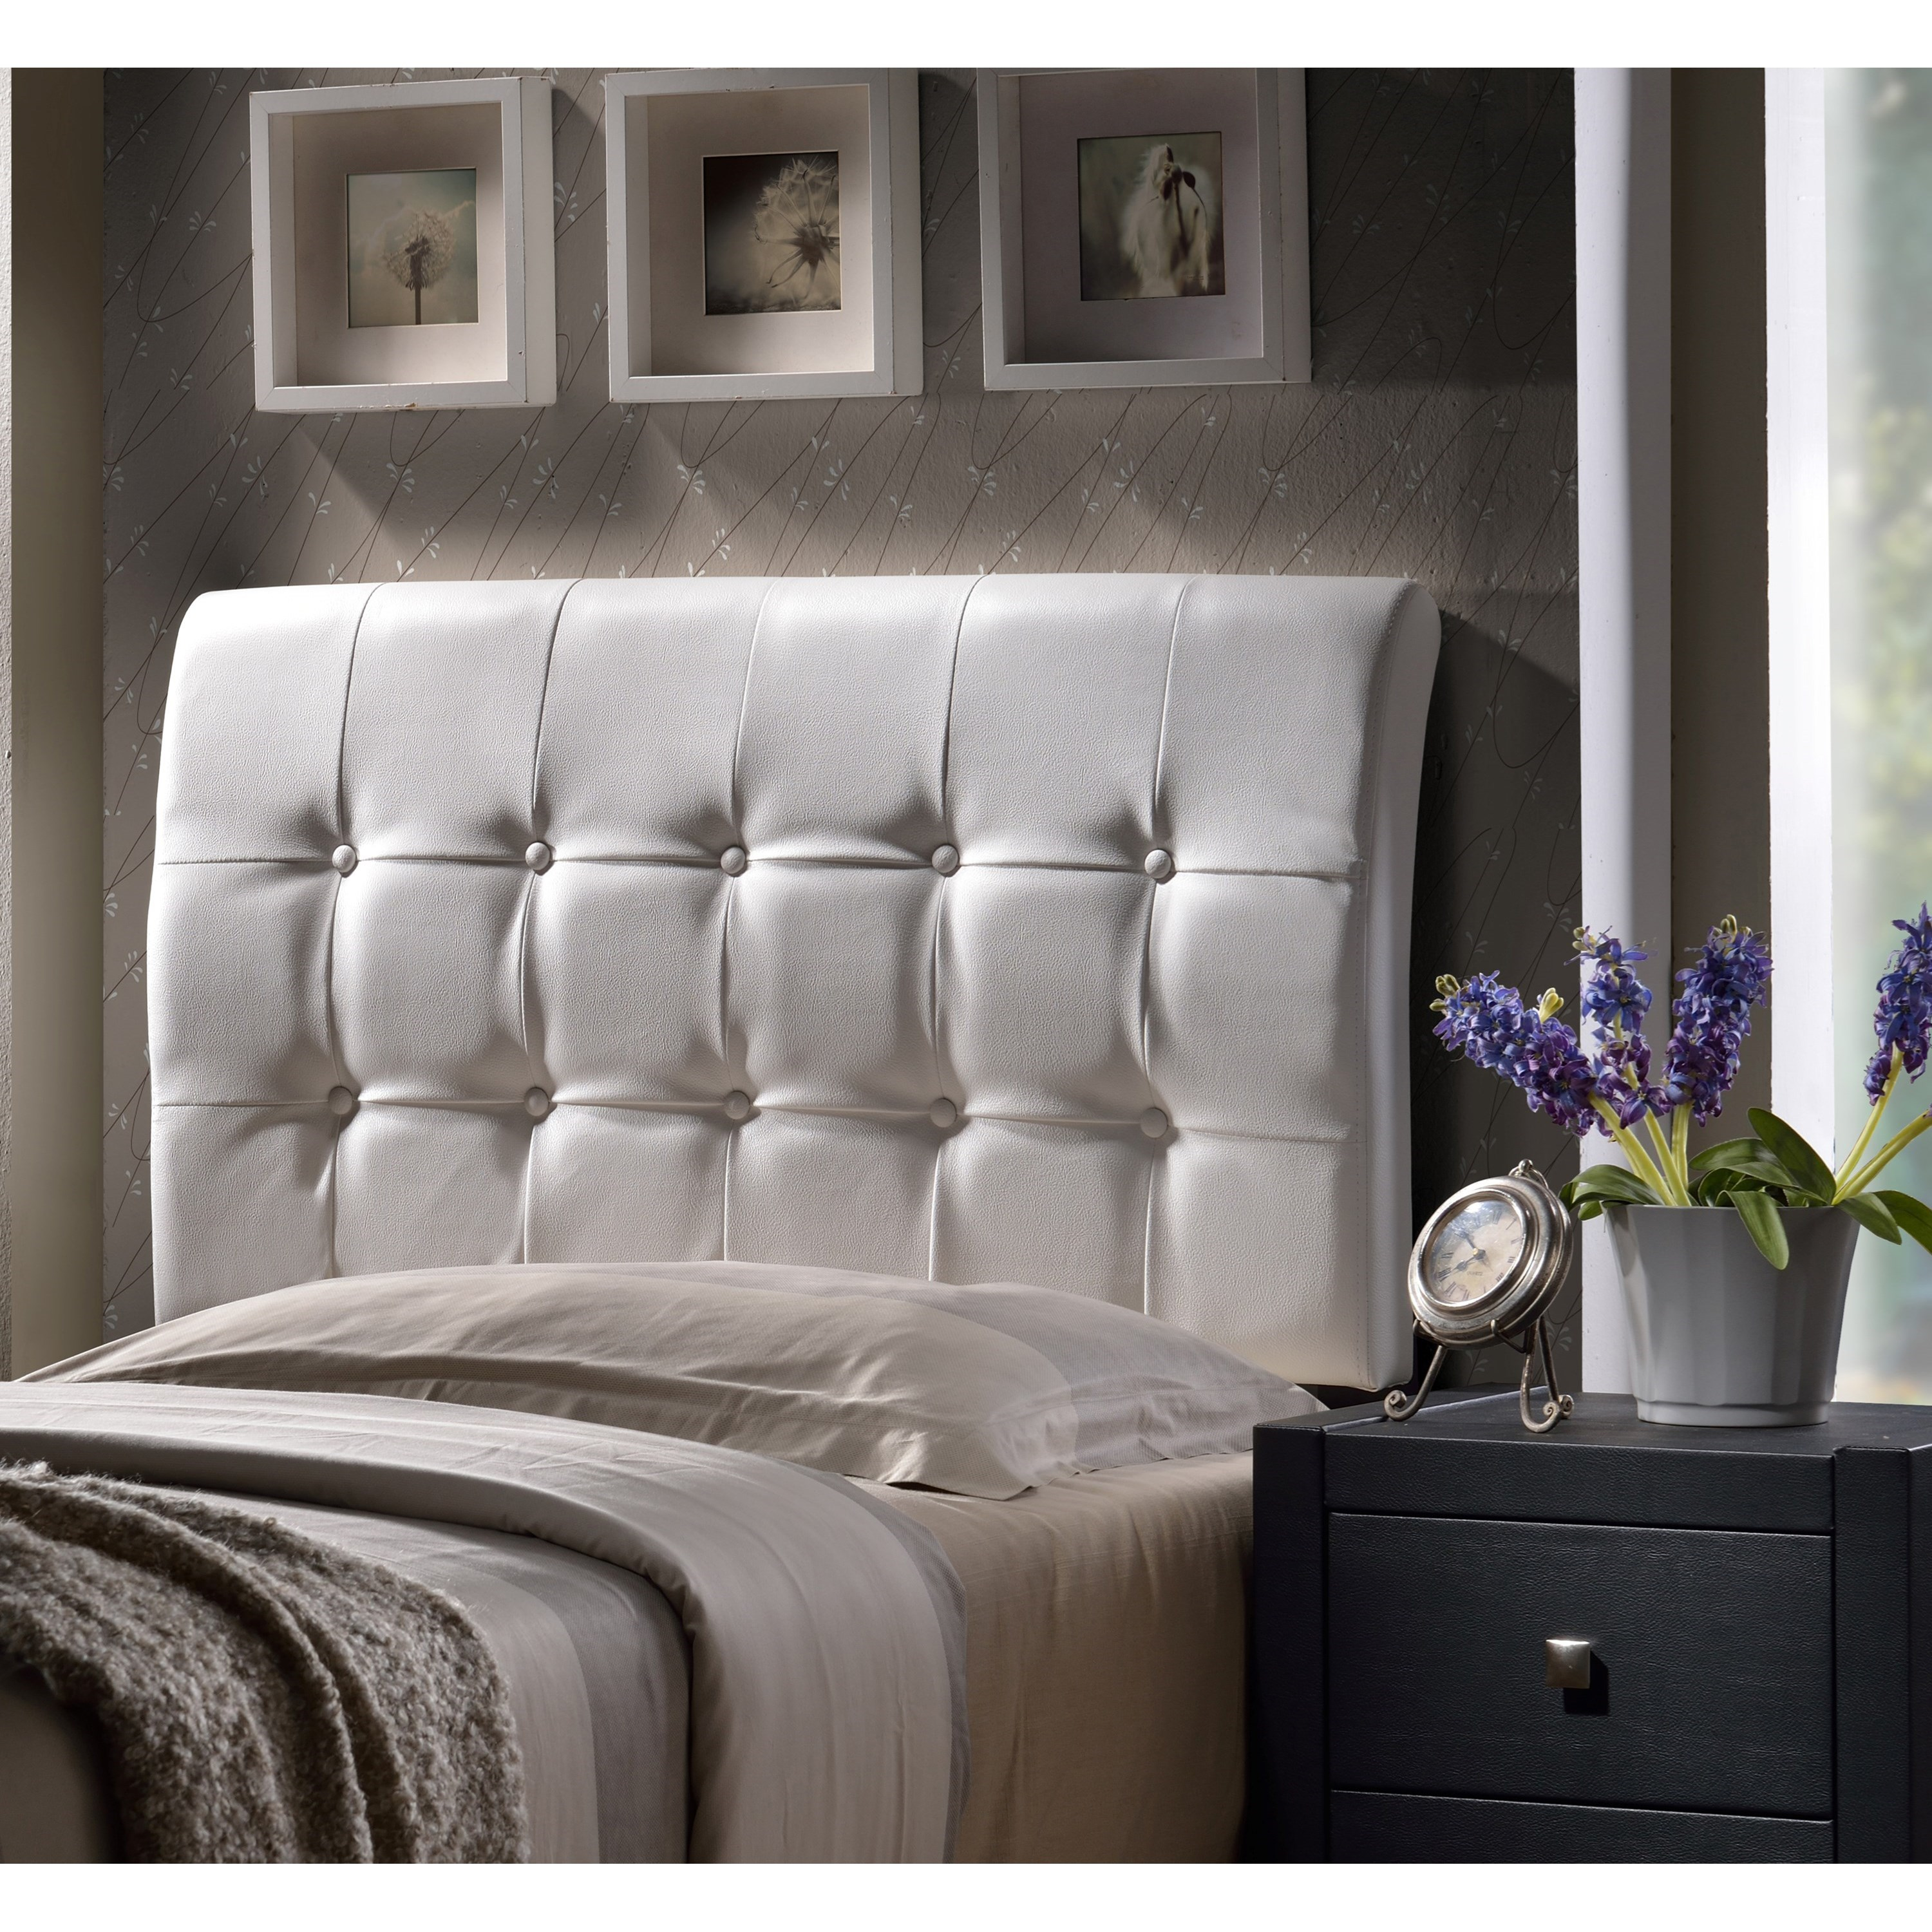 Upholstered Beds Lusso Queen Headboard by Hillsdale at Mueller Furniture